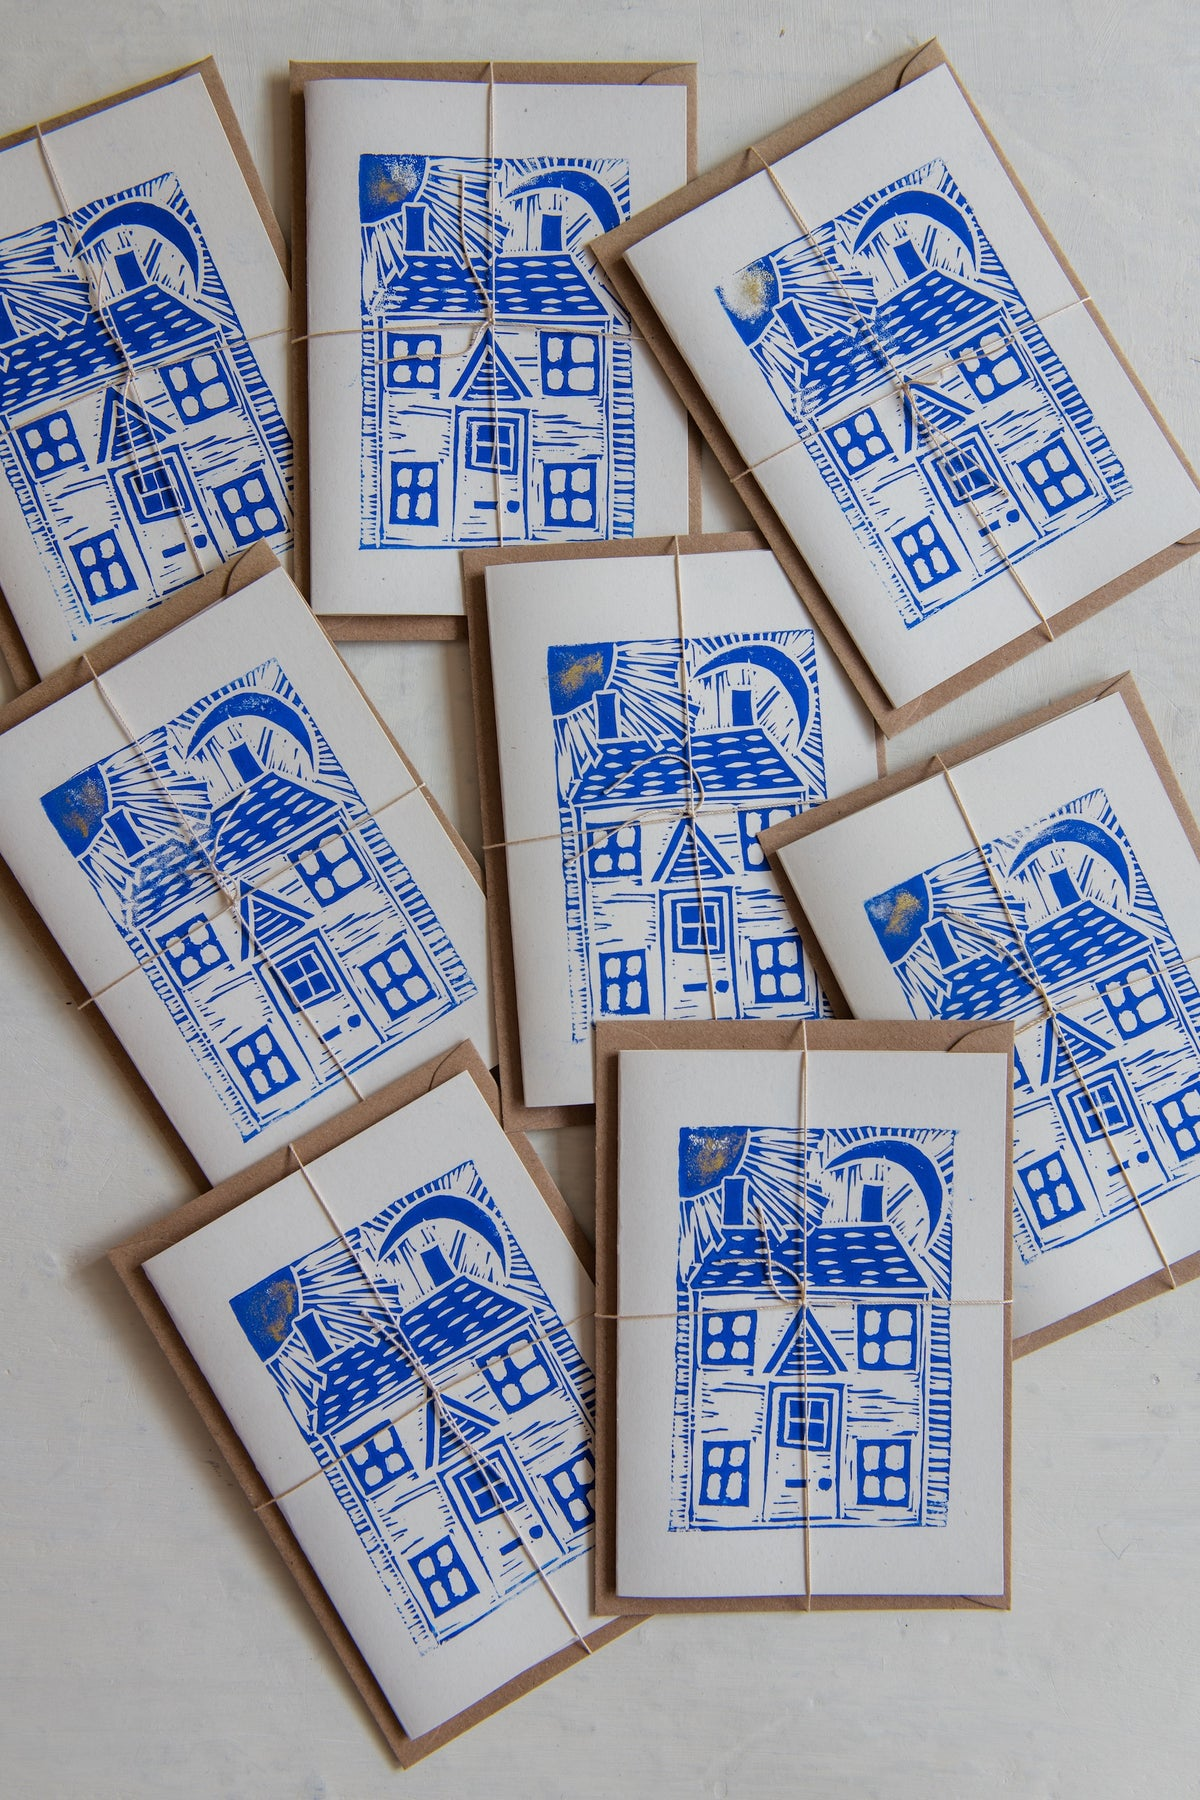 Image of 'House, moon & sun' hand block printed greeting cards